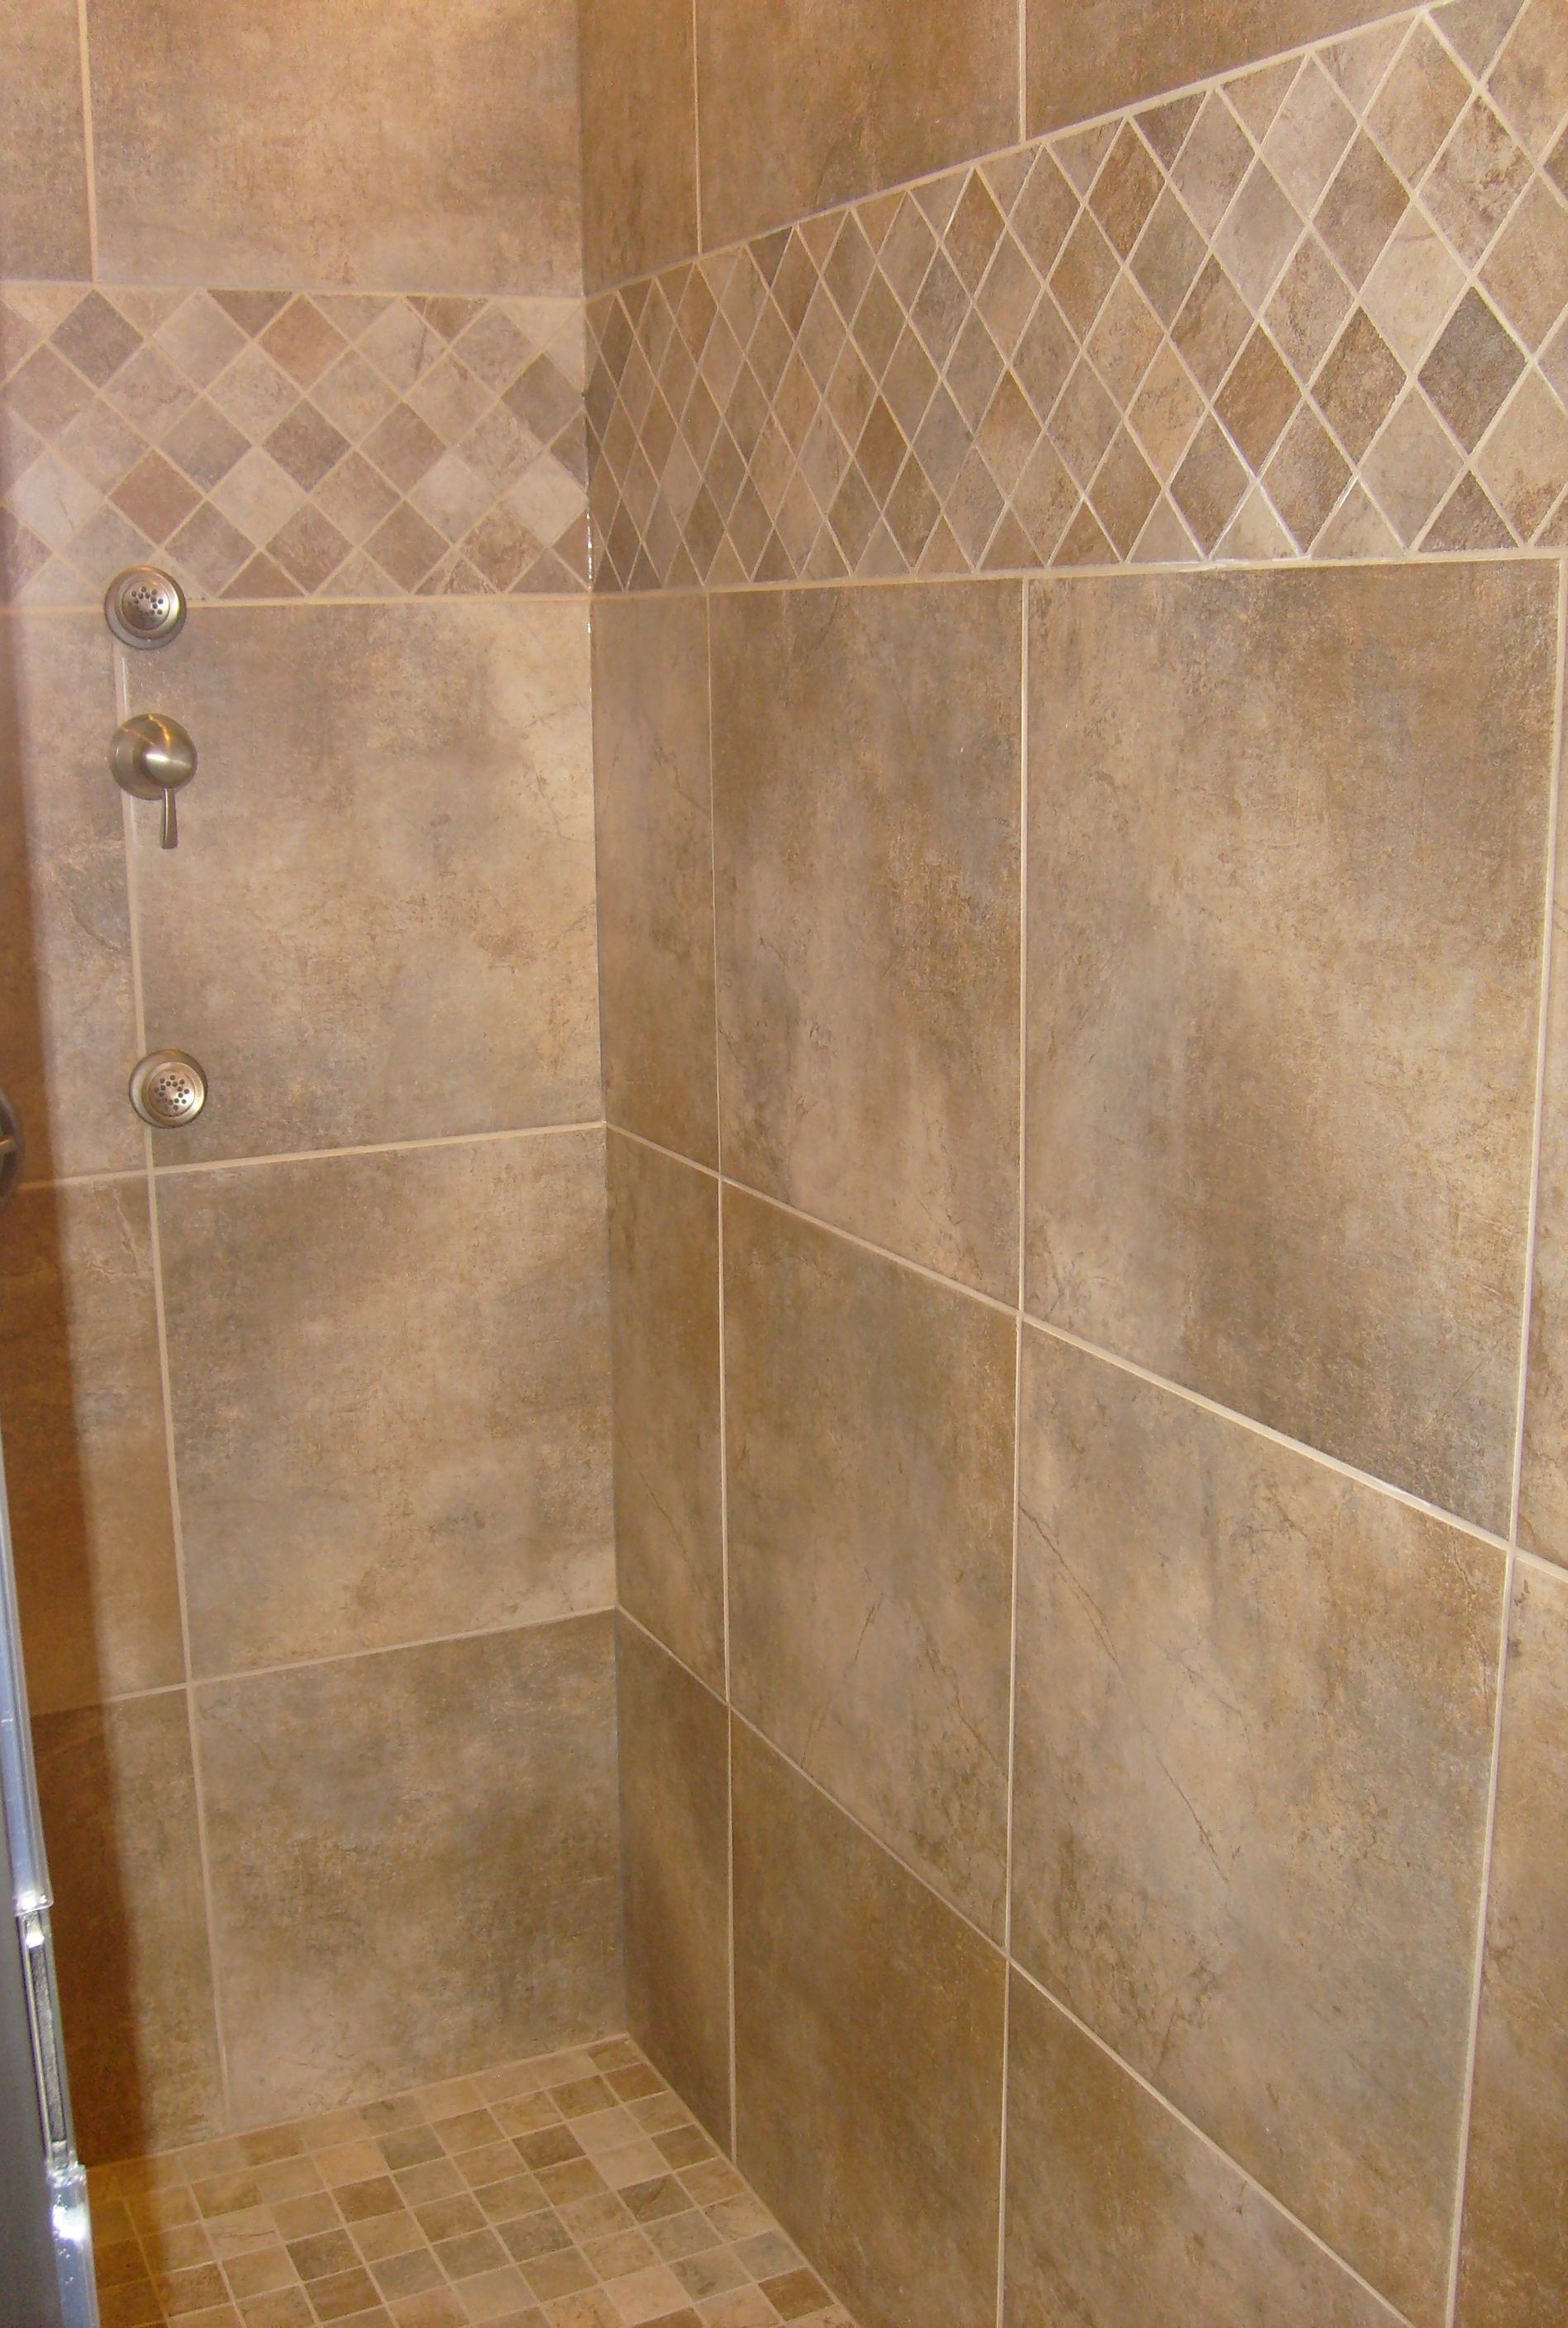 Best Tile To Use For Shower Walls